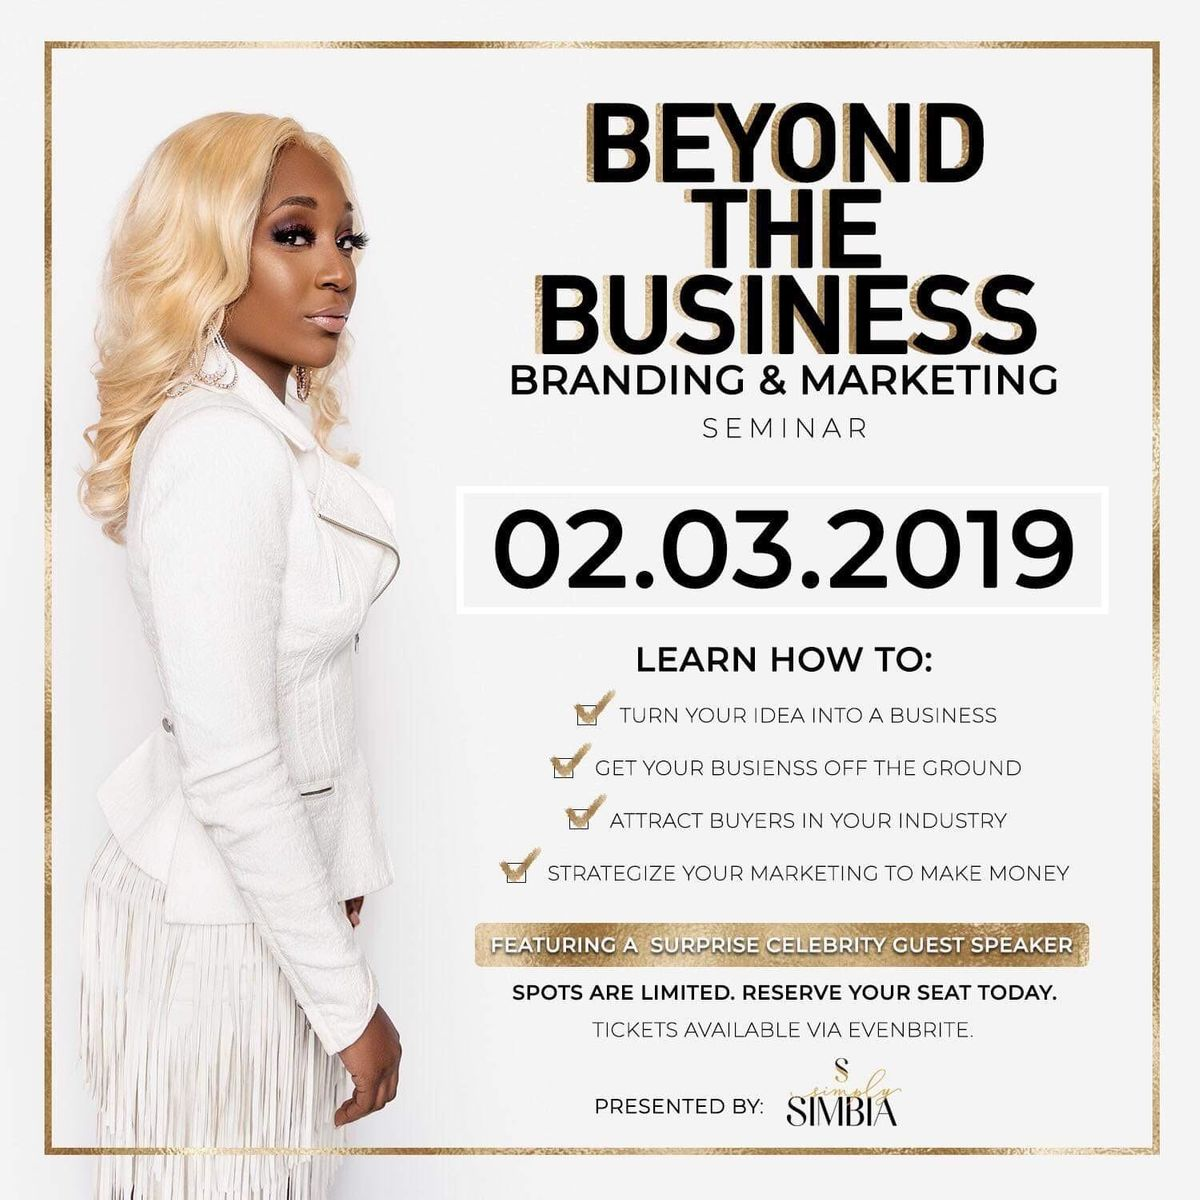 Behind the Business